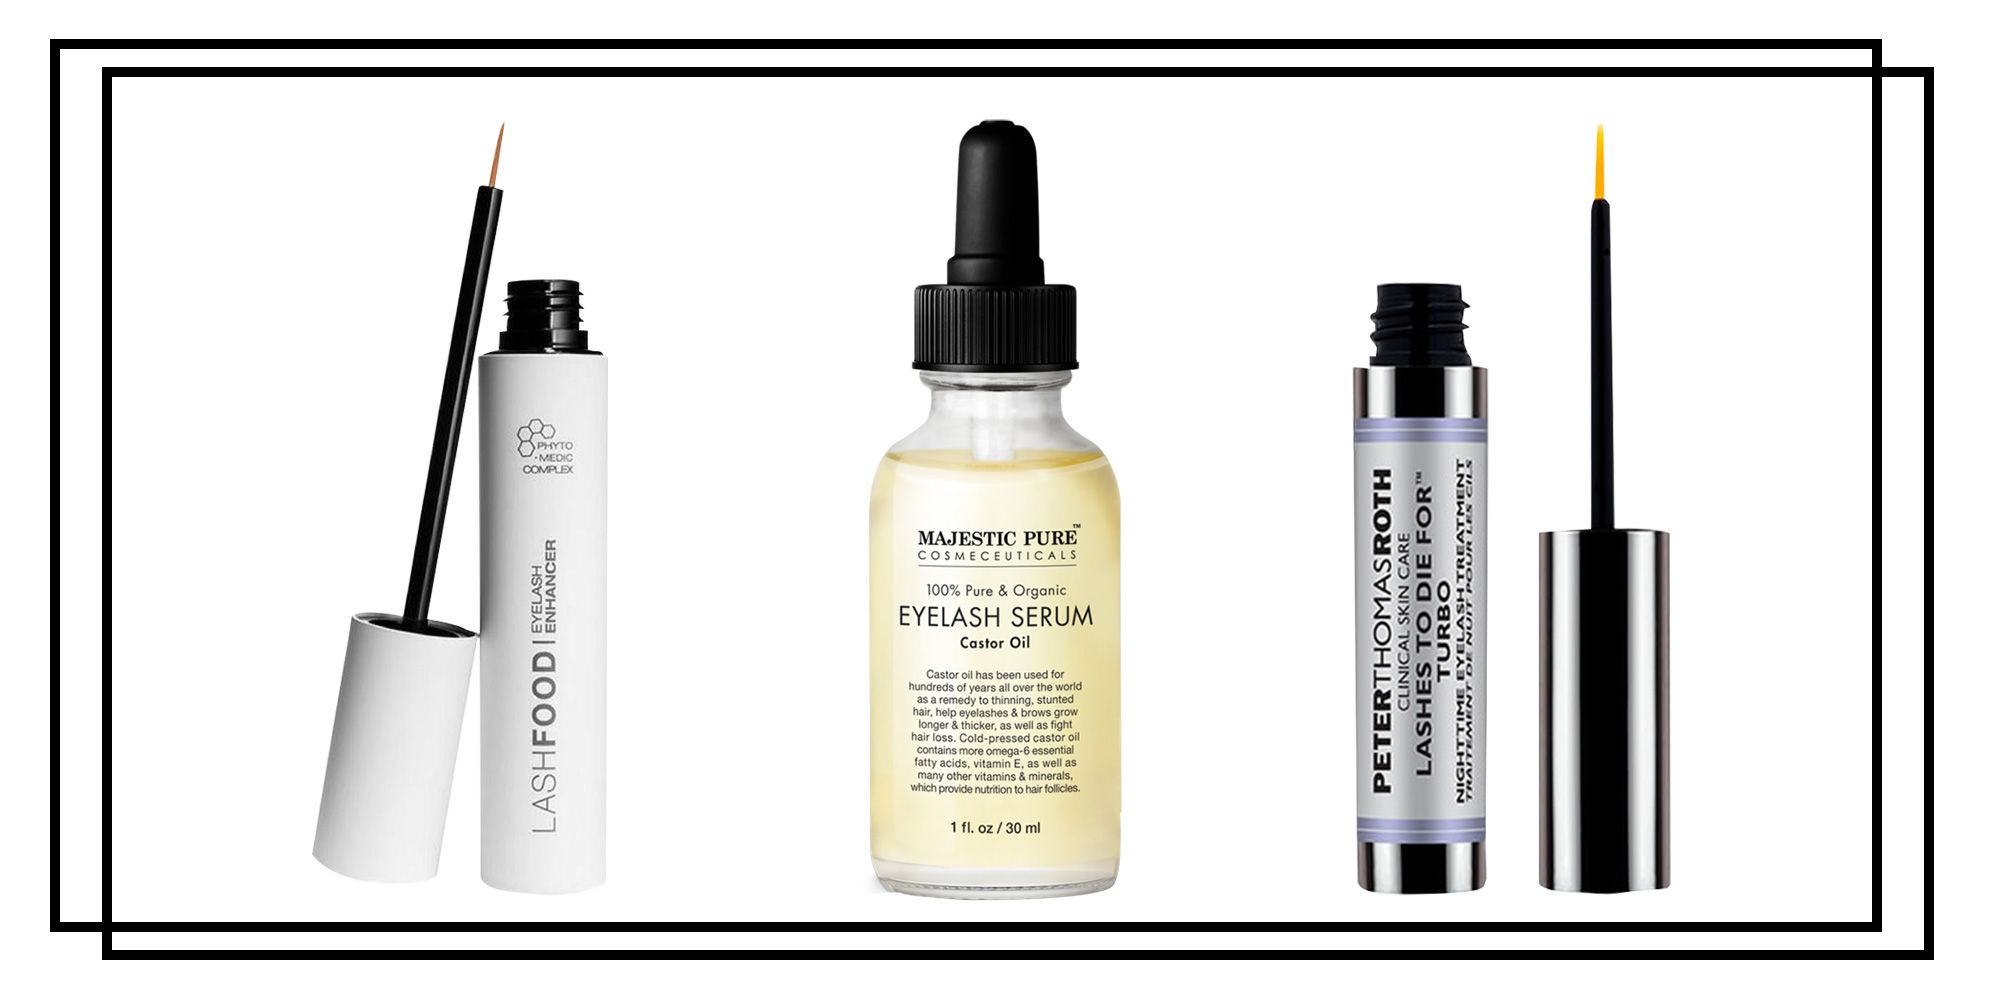 10 Eyelash Growth Serums That Will Give You The Lashes Of Your Dreams